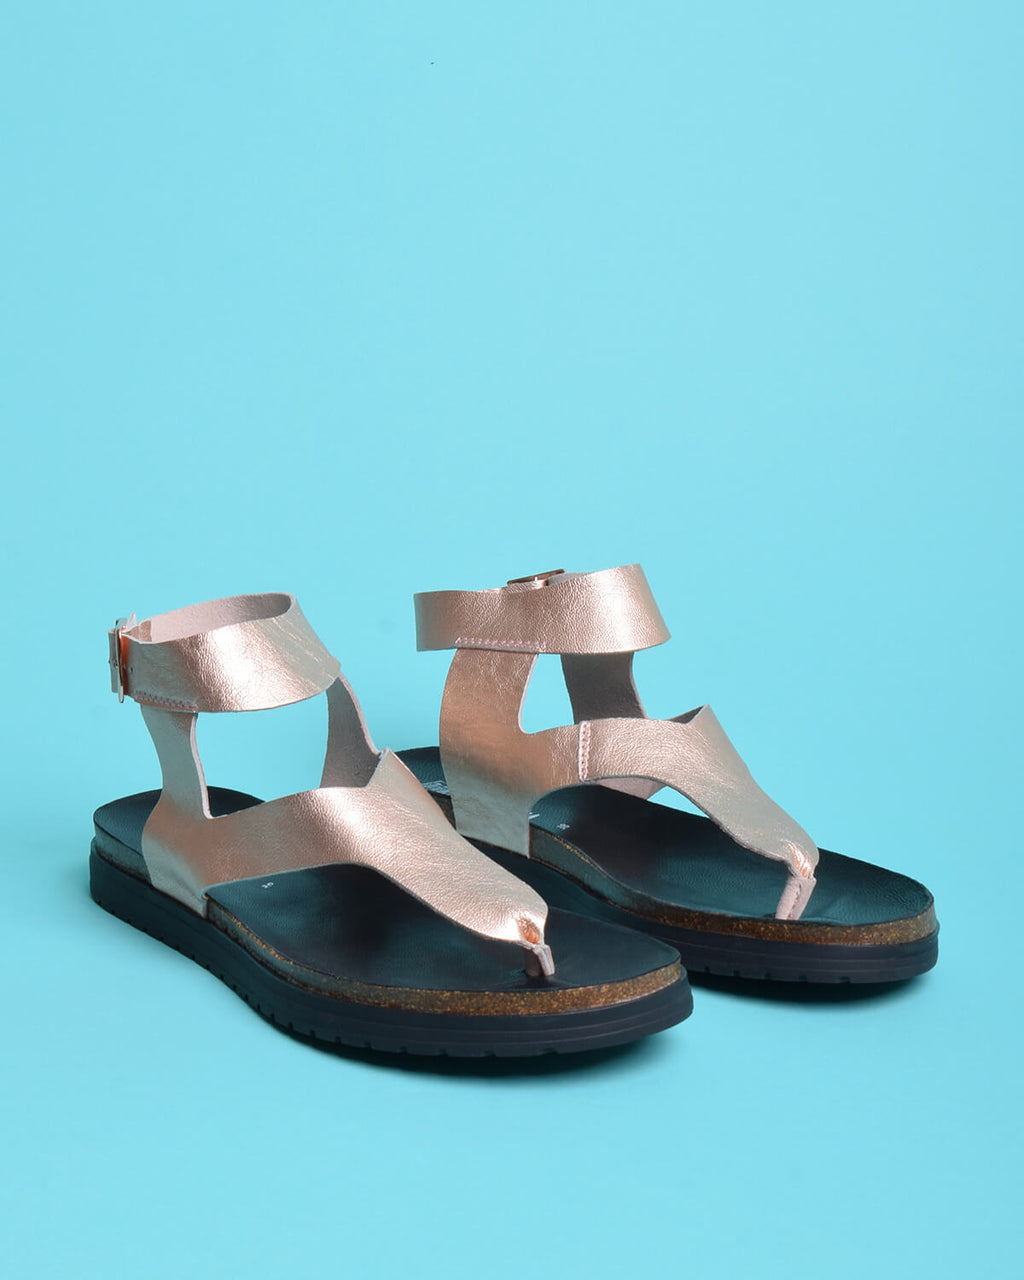 Tesa Metallic Leather Thong Gladiator Sandals - RoseGold - Verbenas USA